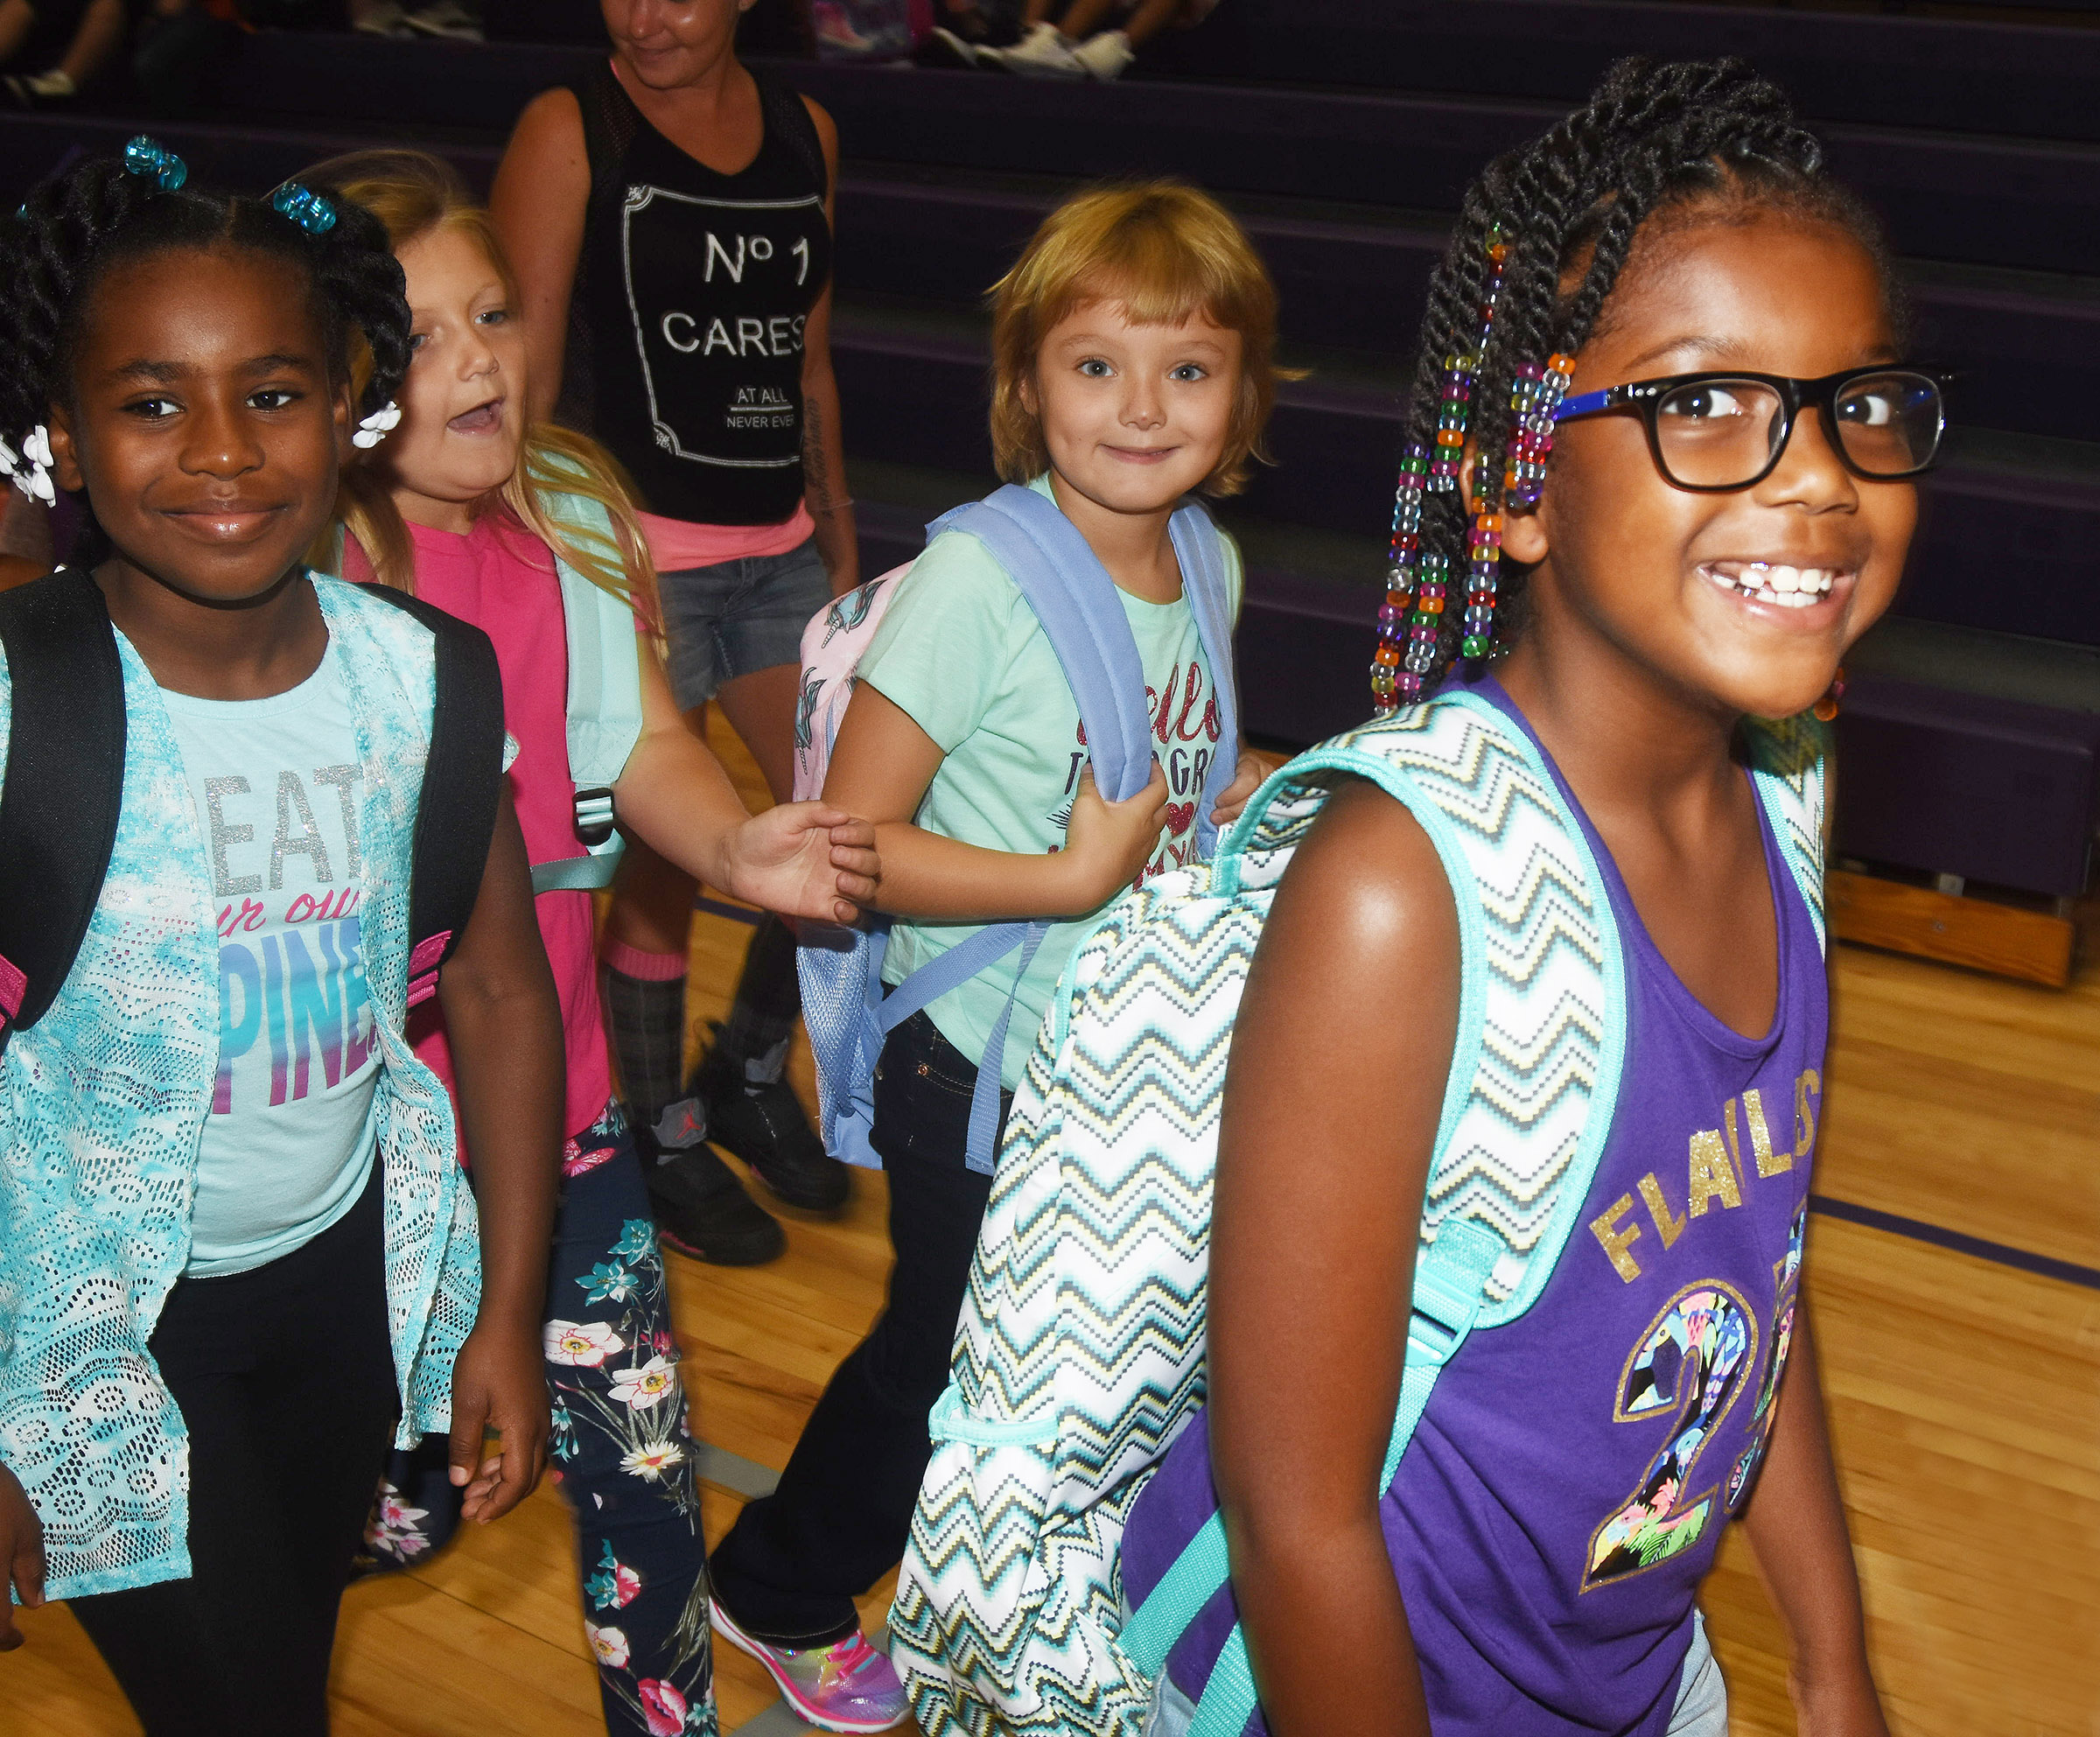 Campbellsville Elementary School third-grader Willow Griffin smiles with her classmates as they walk to class.